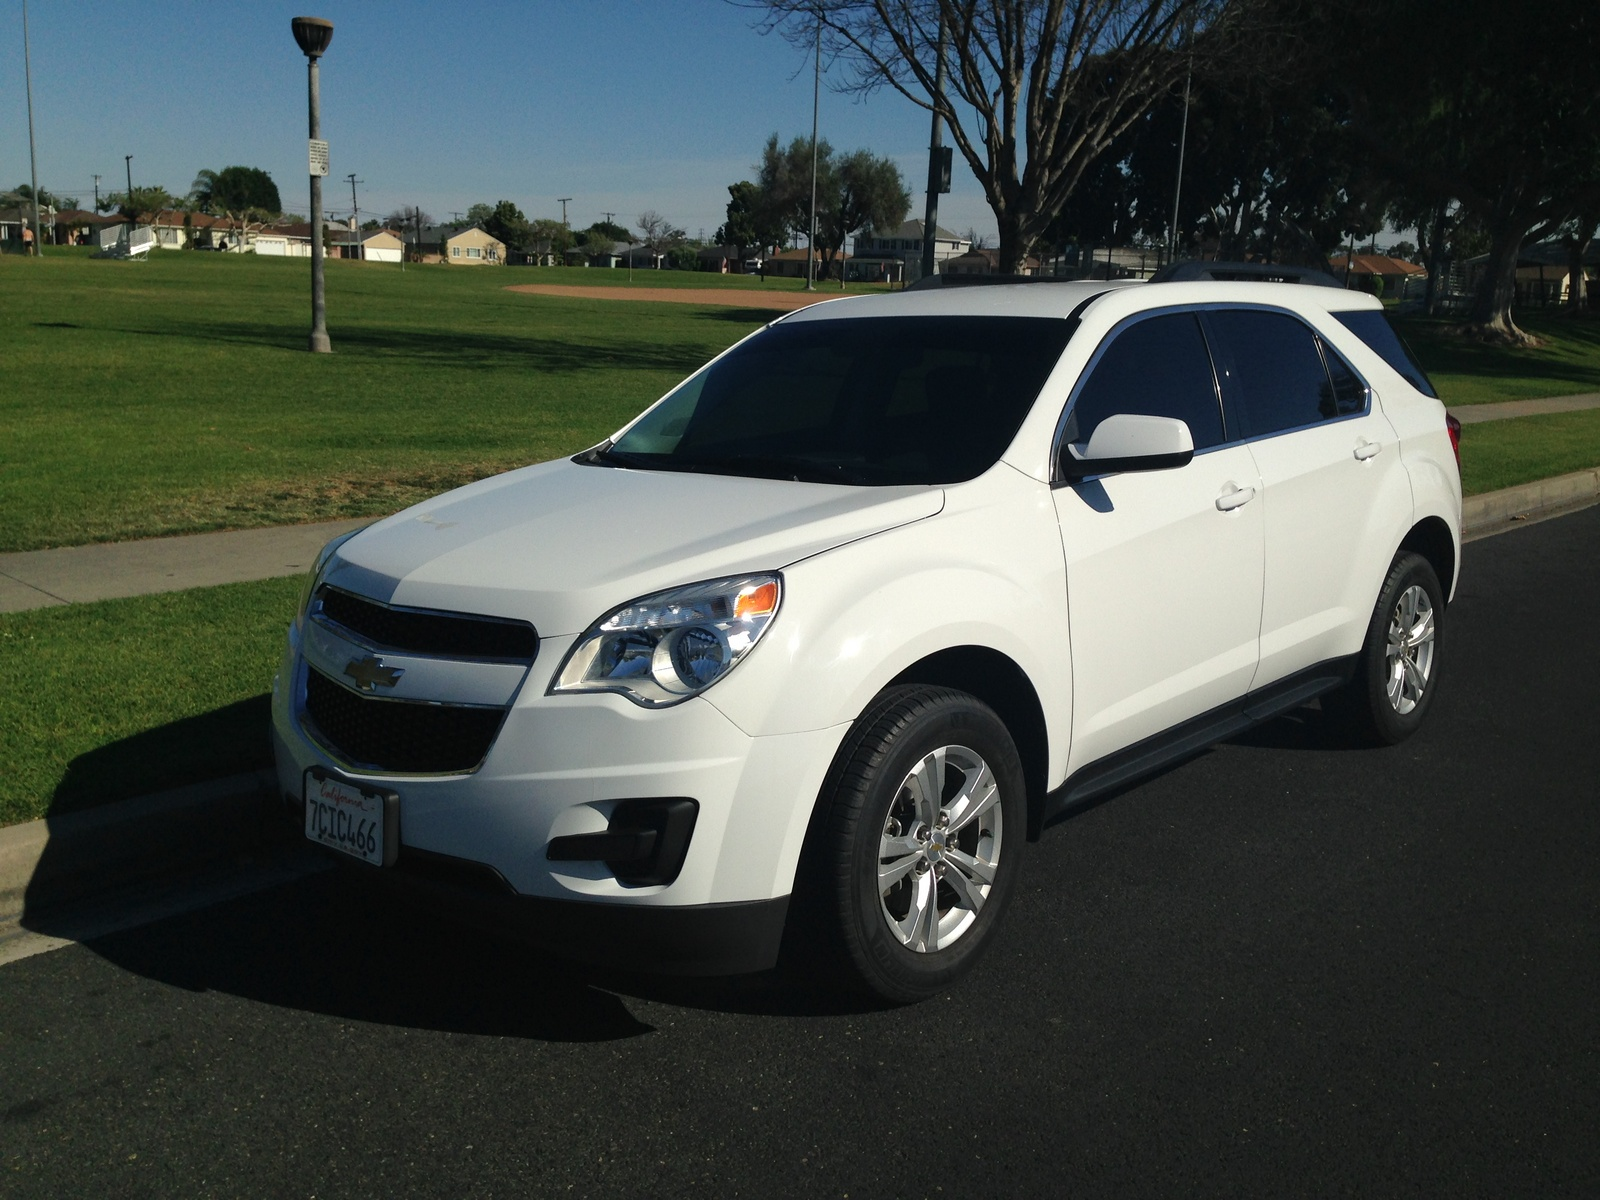 used 2012 chevrolet equinox exterior specs 2012 html autos weblog. Black Bedroom Furniture Sets. Home Design Ideas